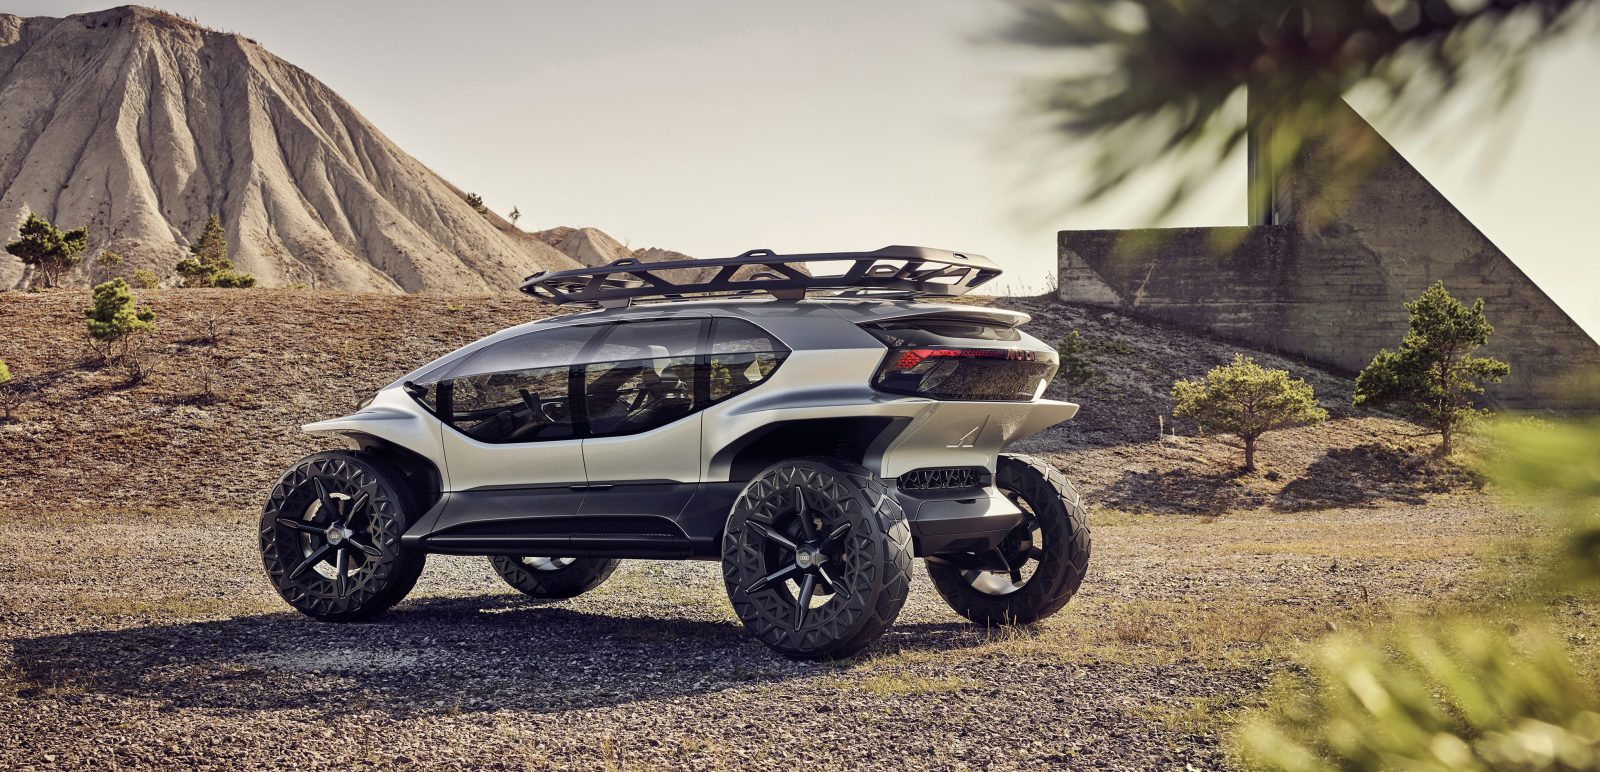 Audi unveils Mars rover-looking electric off-roader with insane specs